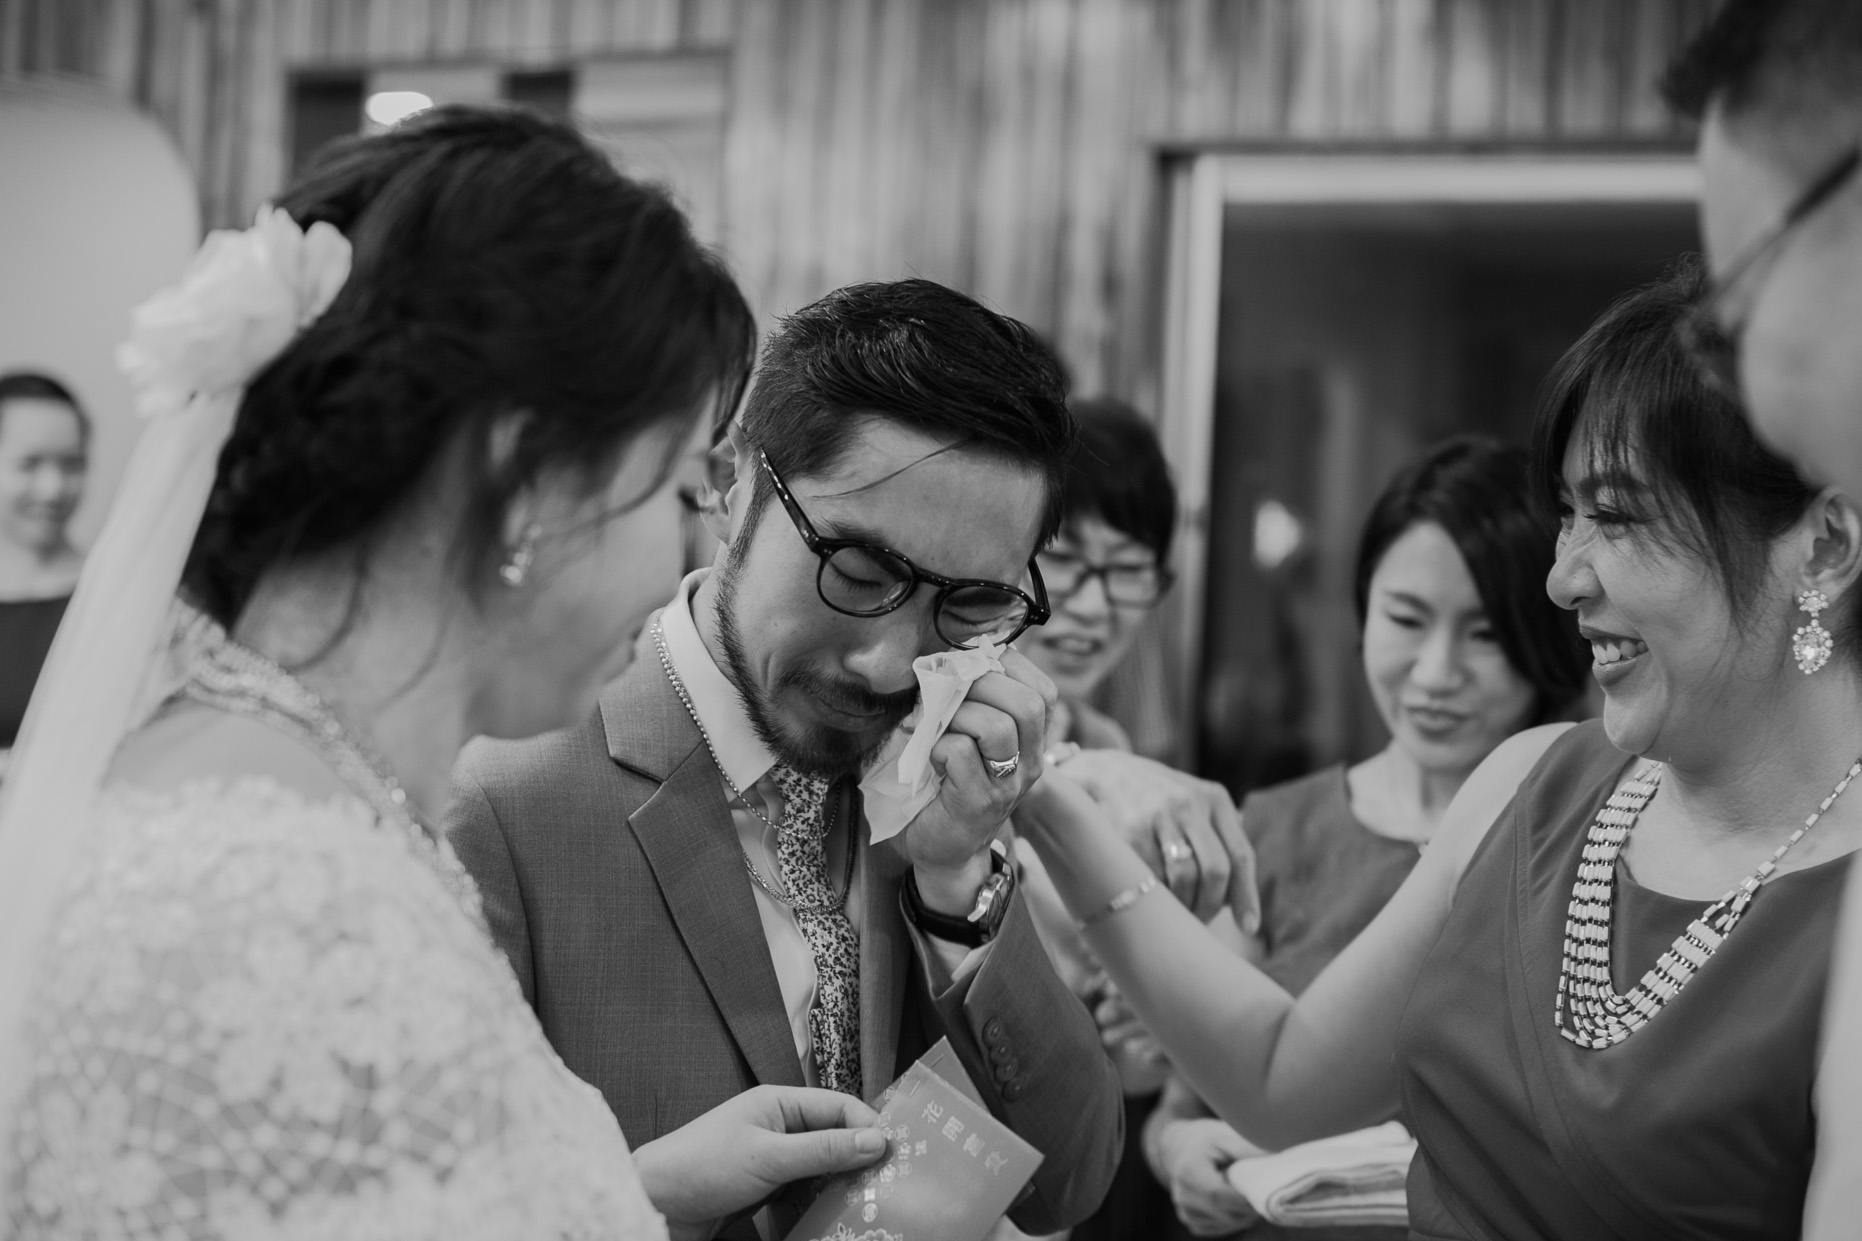 33-hellojanelee-sam grace-malaysia-wedding-day